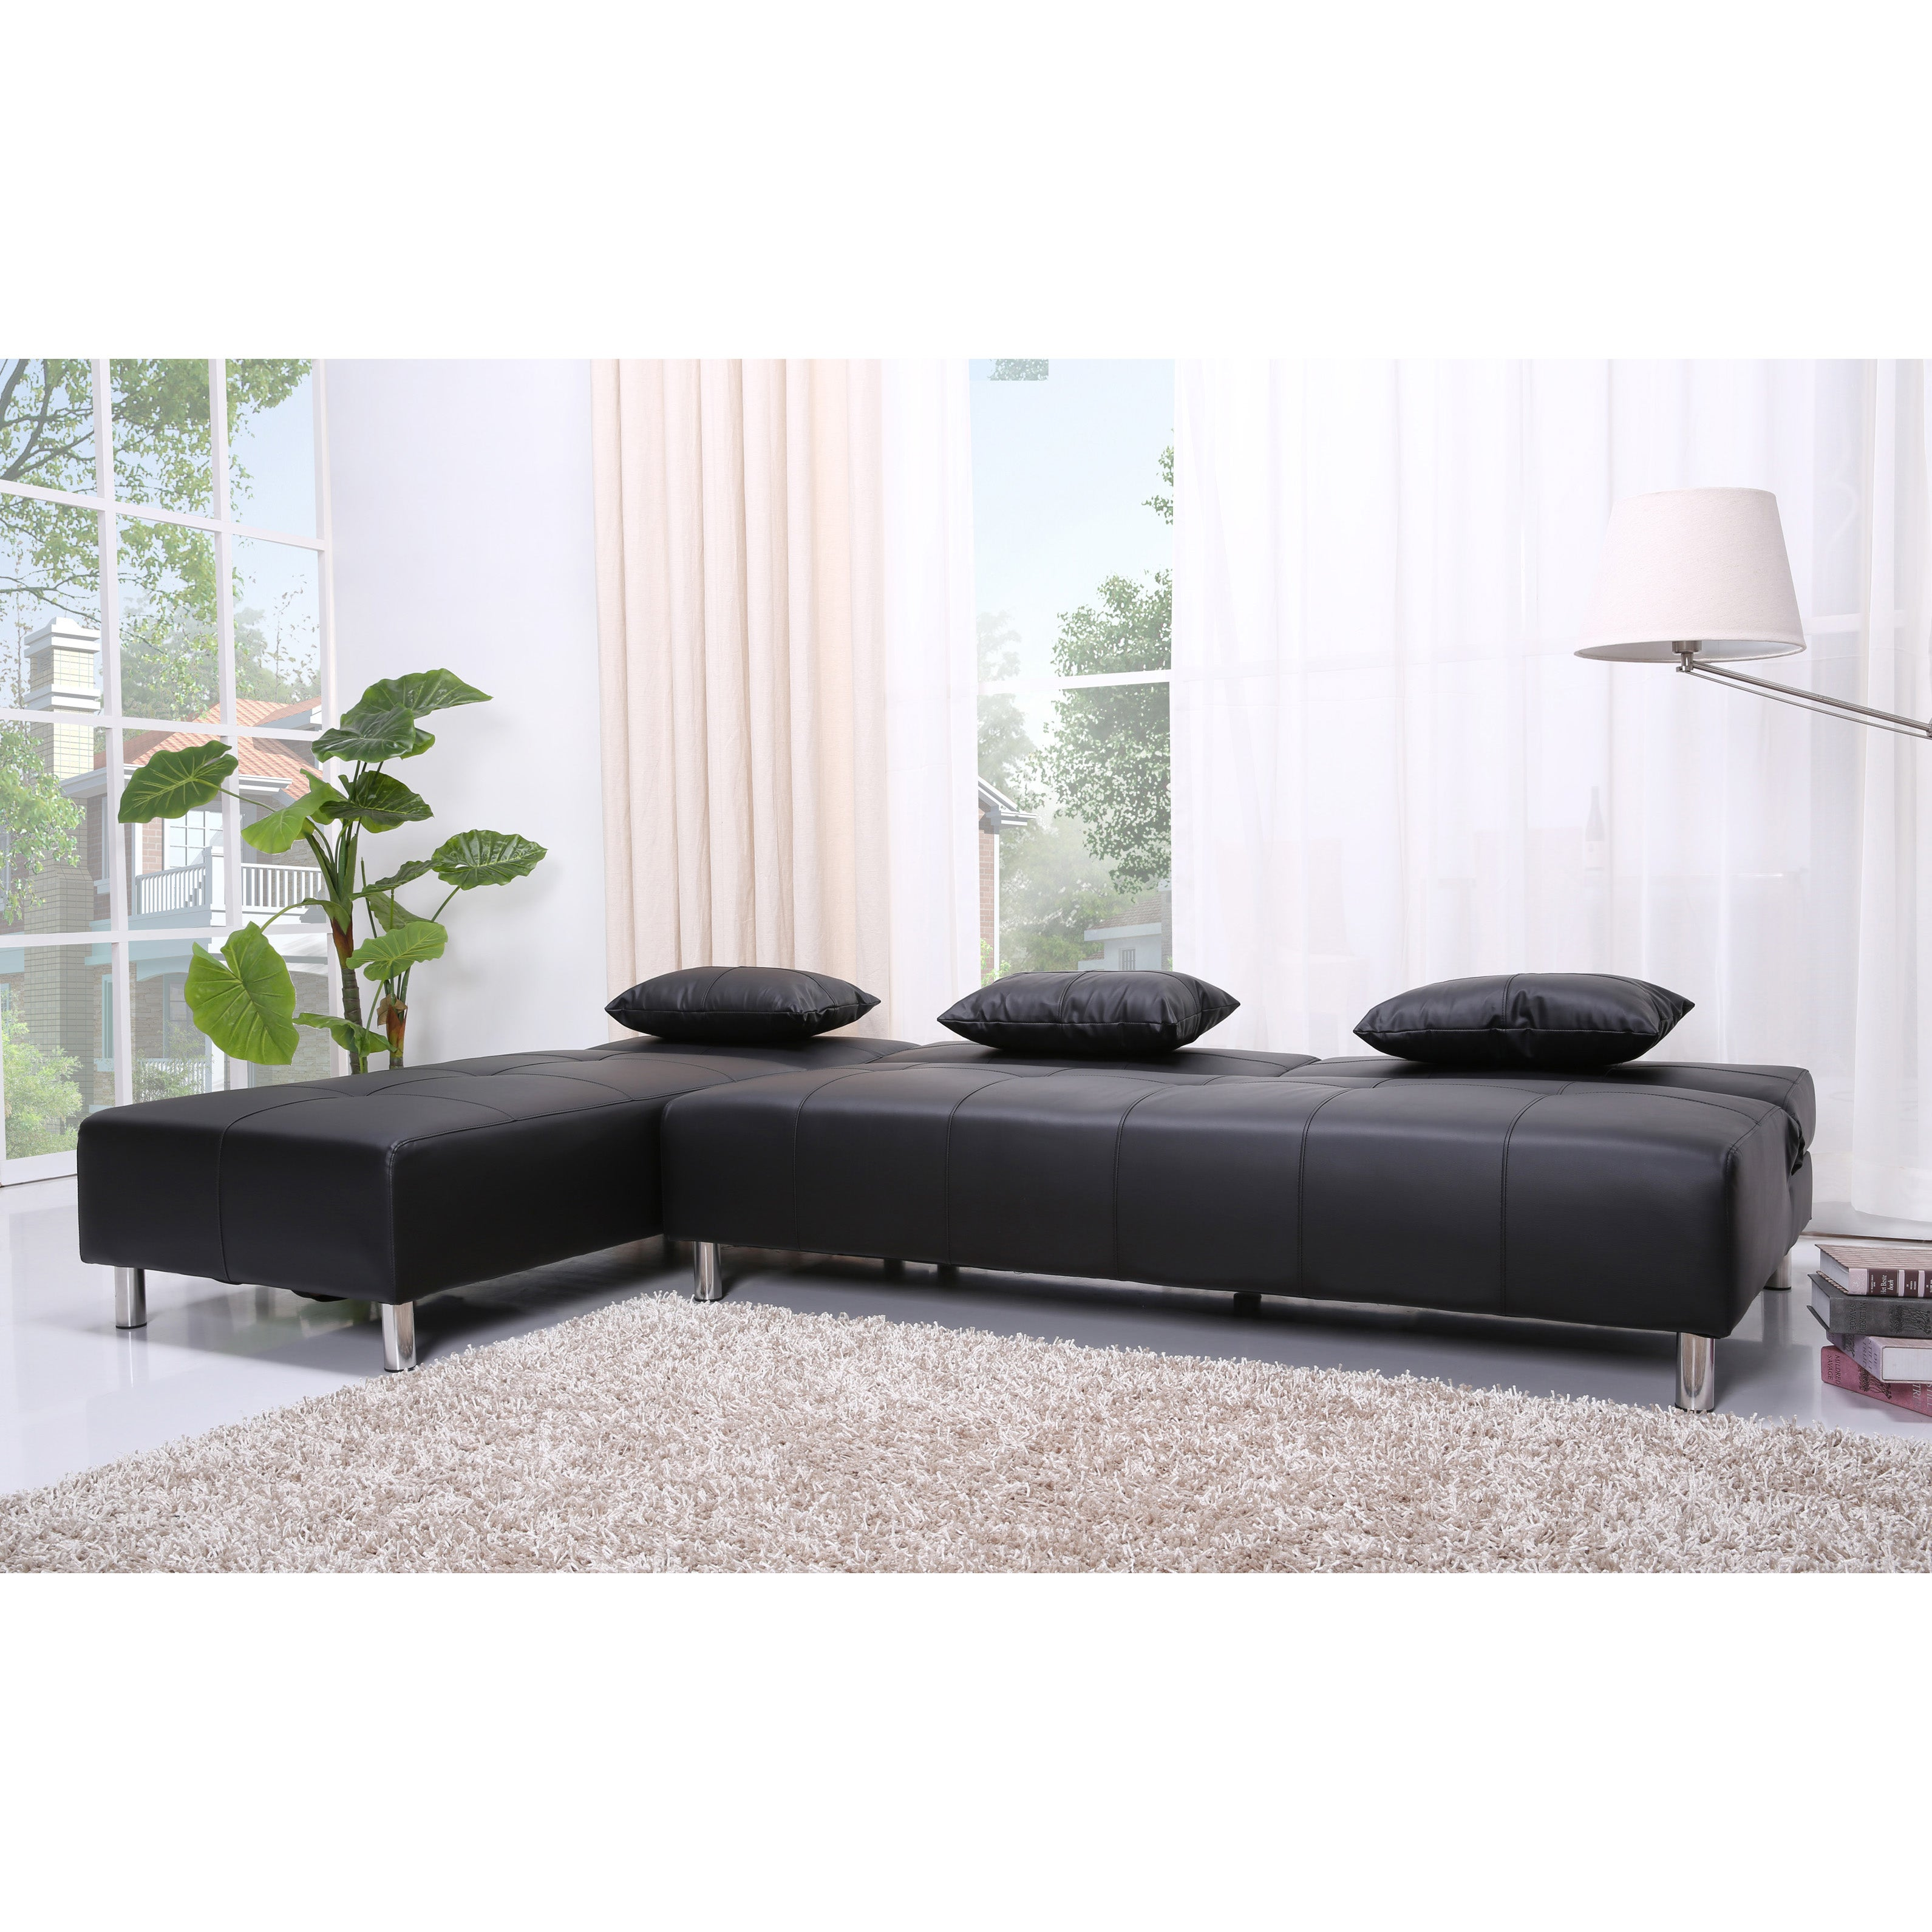 Atlanta Black Faux Leather Convertible Sectional Sofa Bed Free Shipping Today 6836293